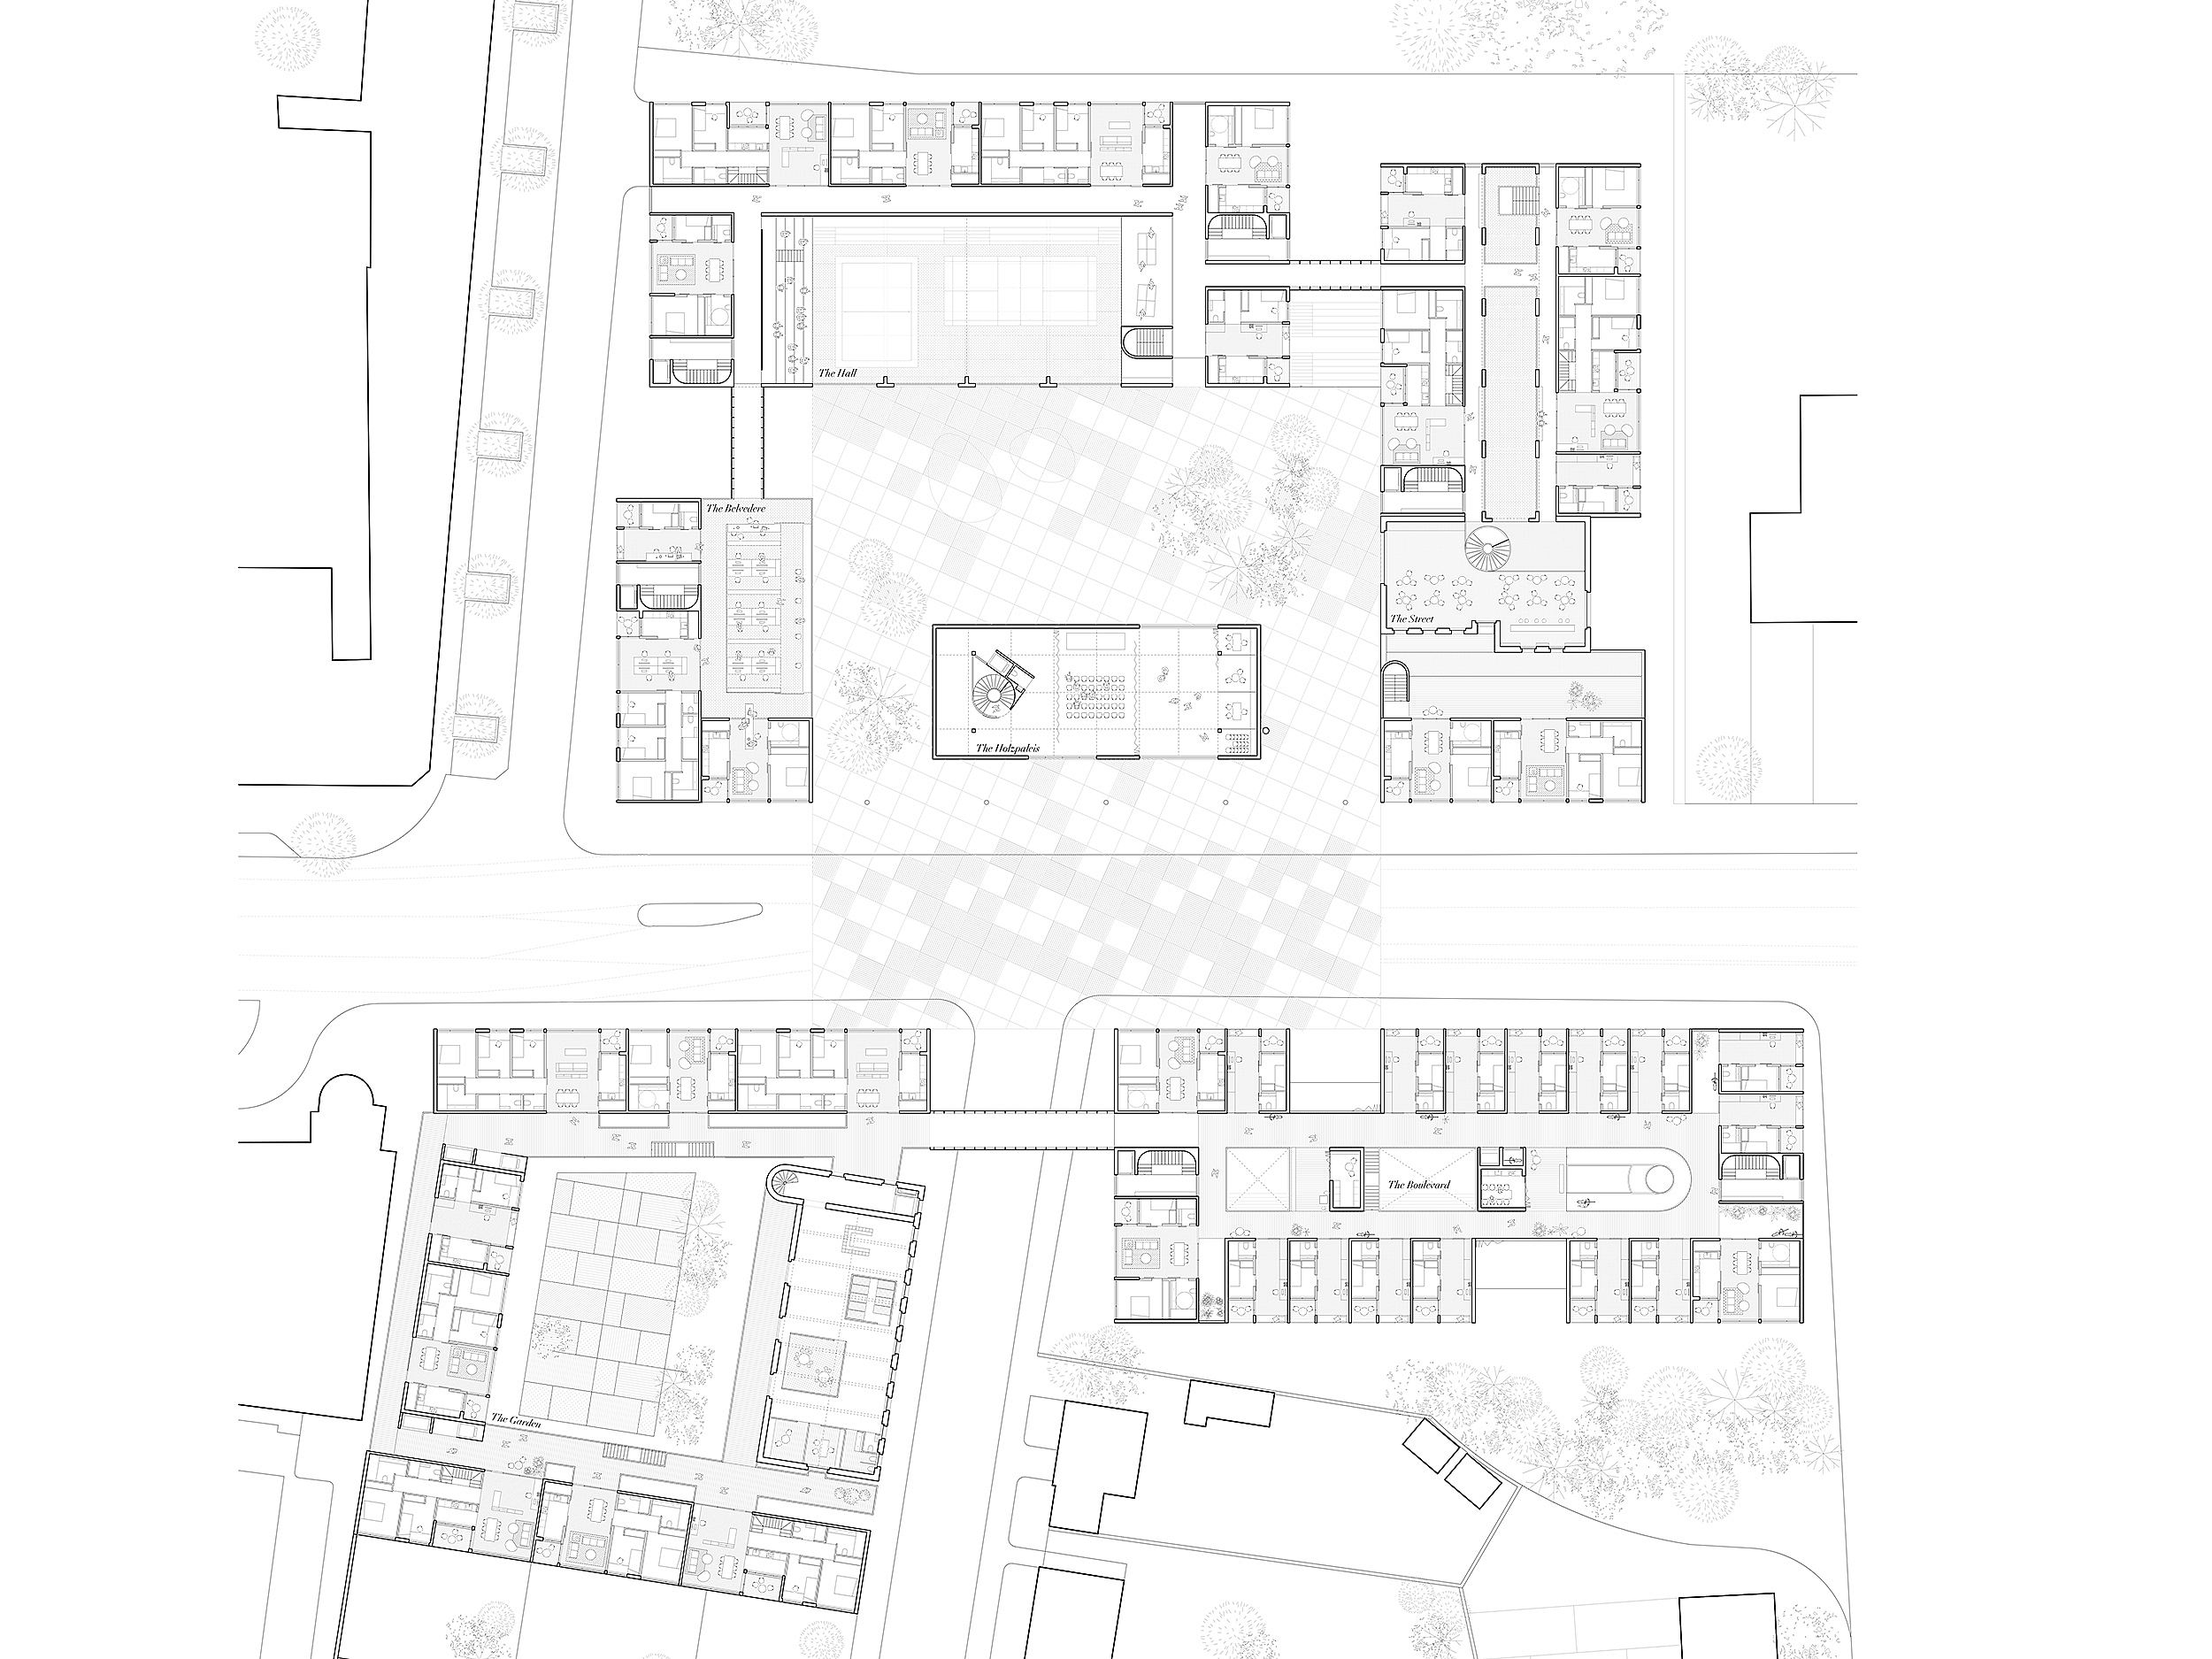 Collective Housing. Projective Habitat Competition. Floor plan 2 architecture